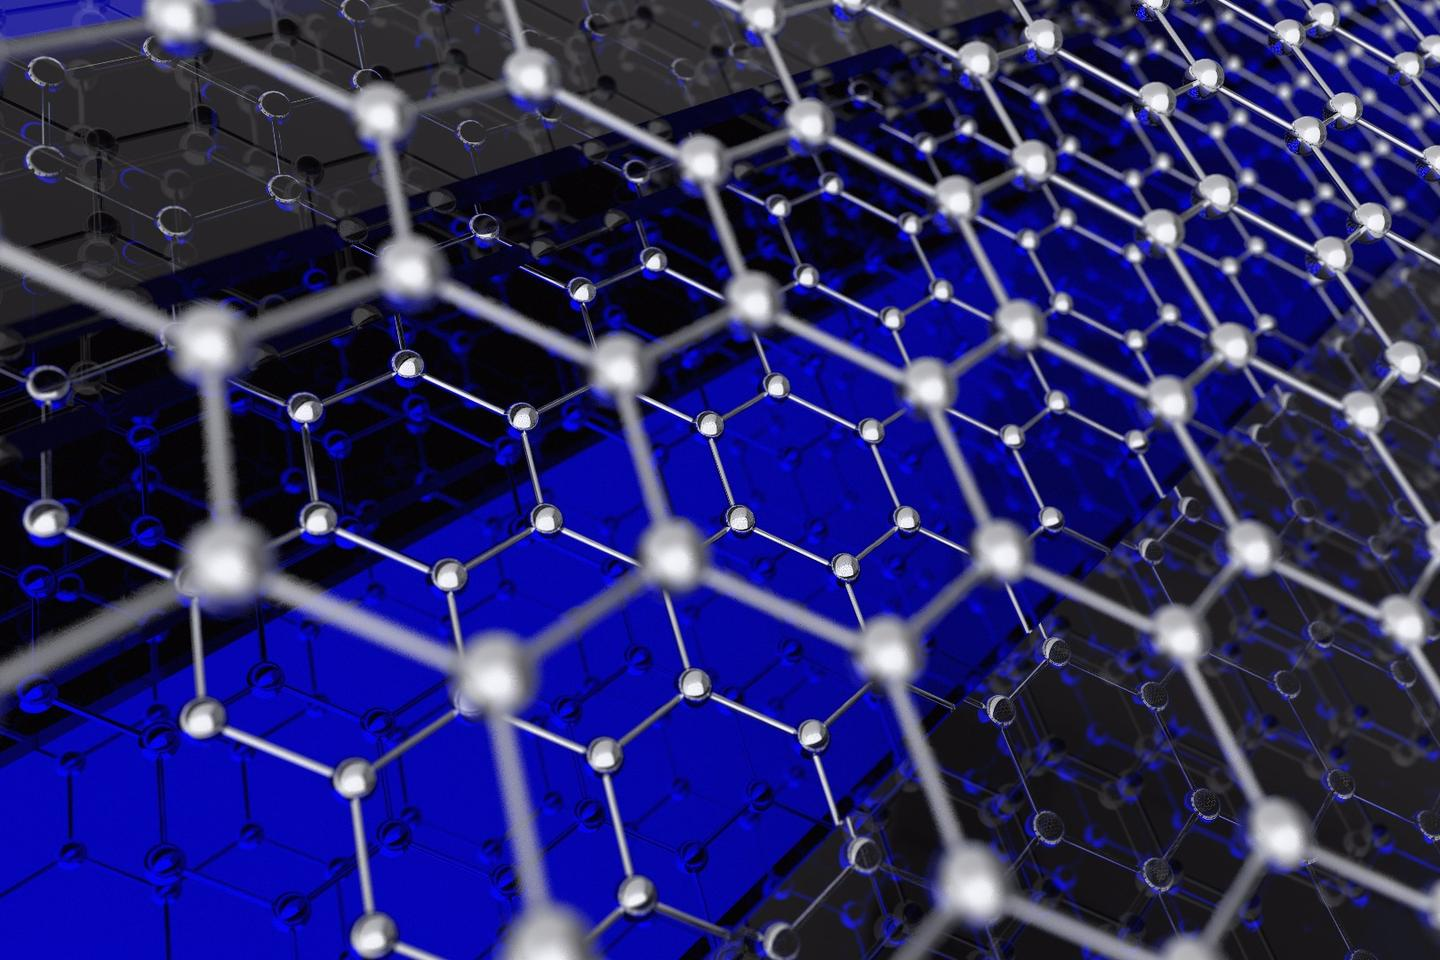 Ultra-low power graphene-based transistor could enable 100